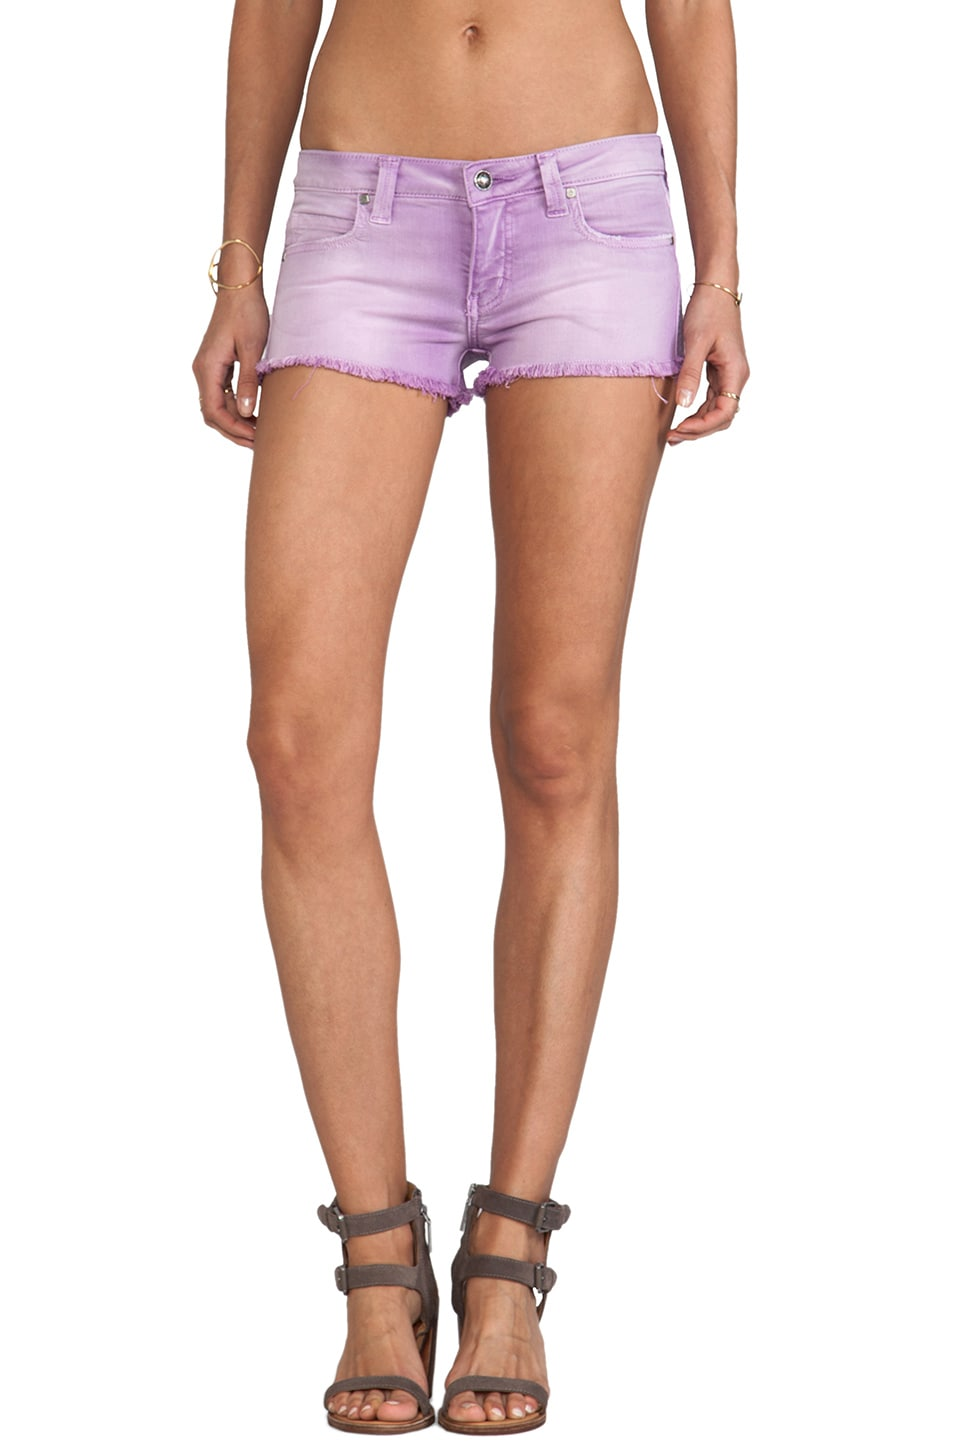 Frankie B. Jeans Summer Girl Short in Lilac